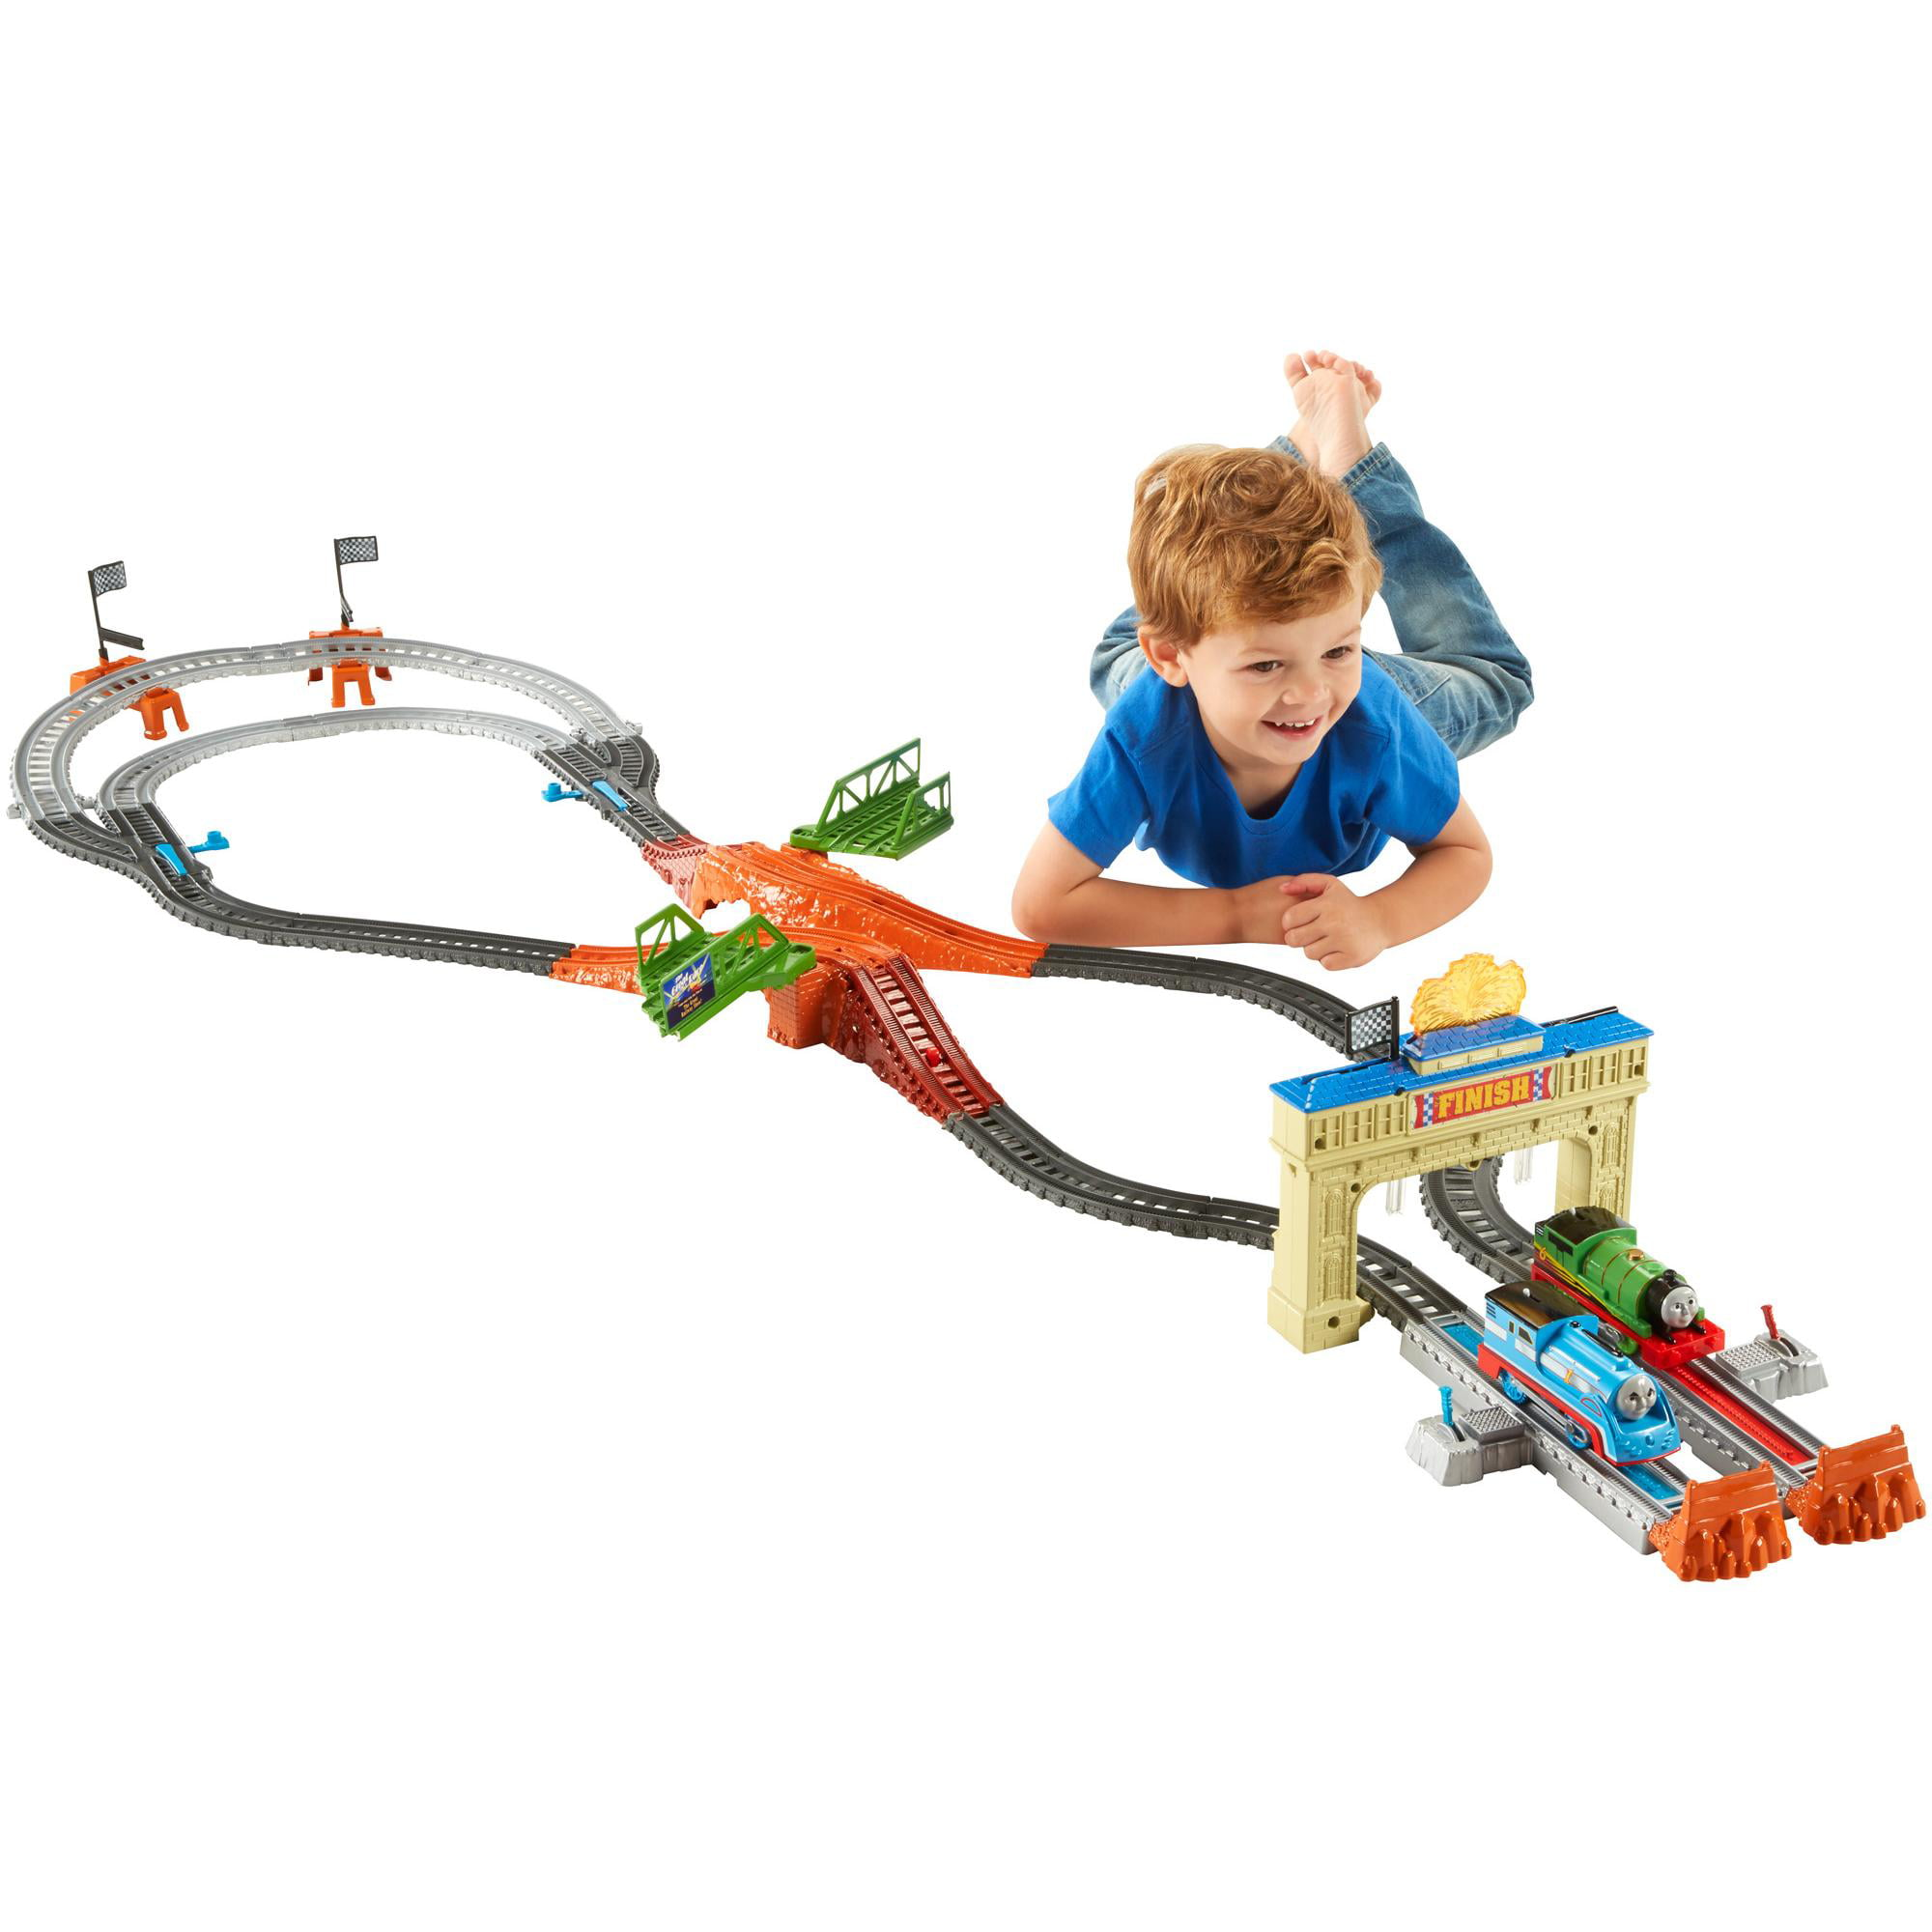 Fisher Price Thomas & Friends Trackmaster Thomas and Percy Railway by FISHER PRICE